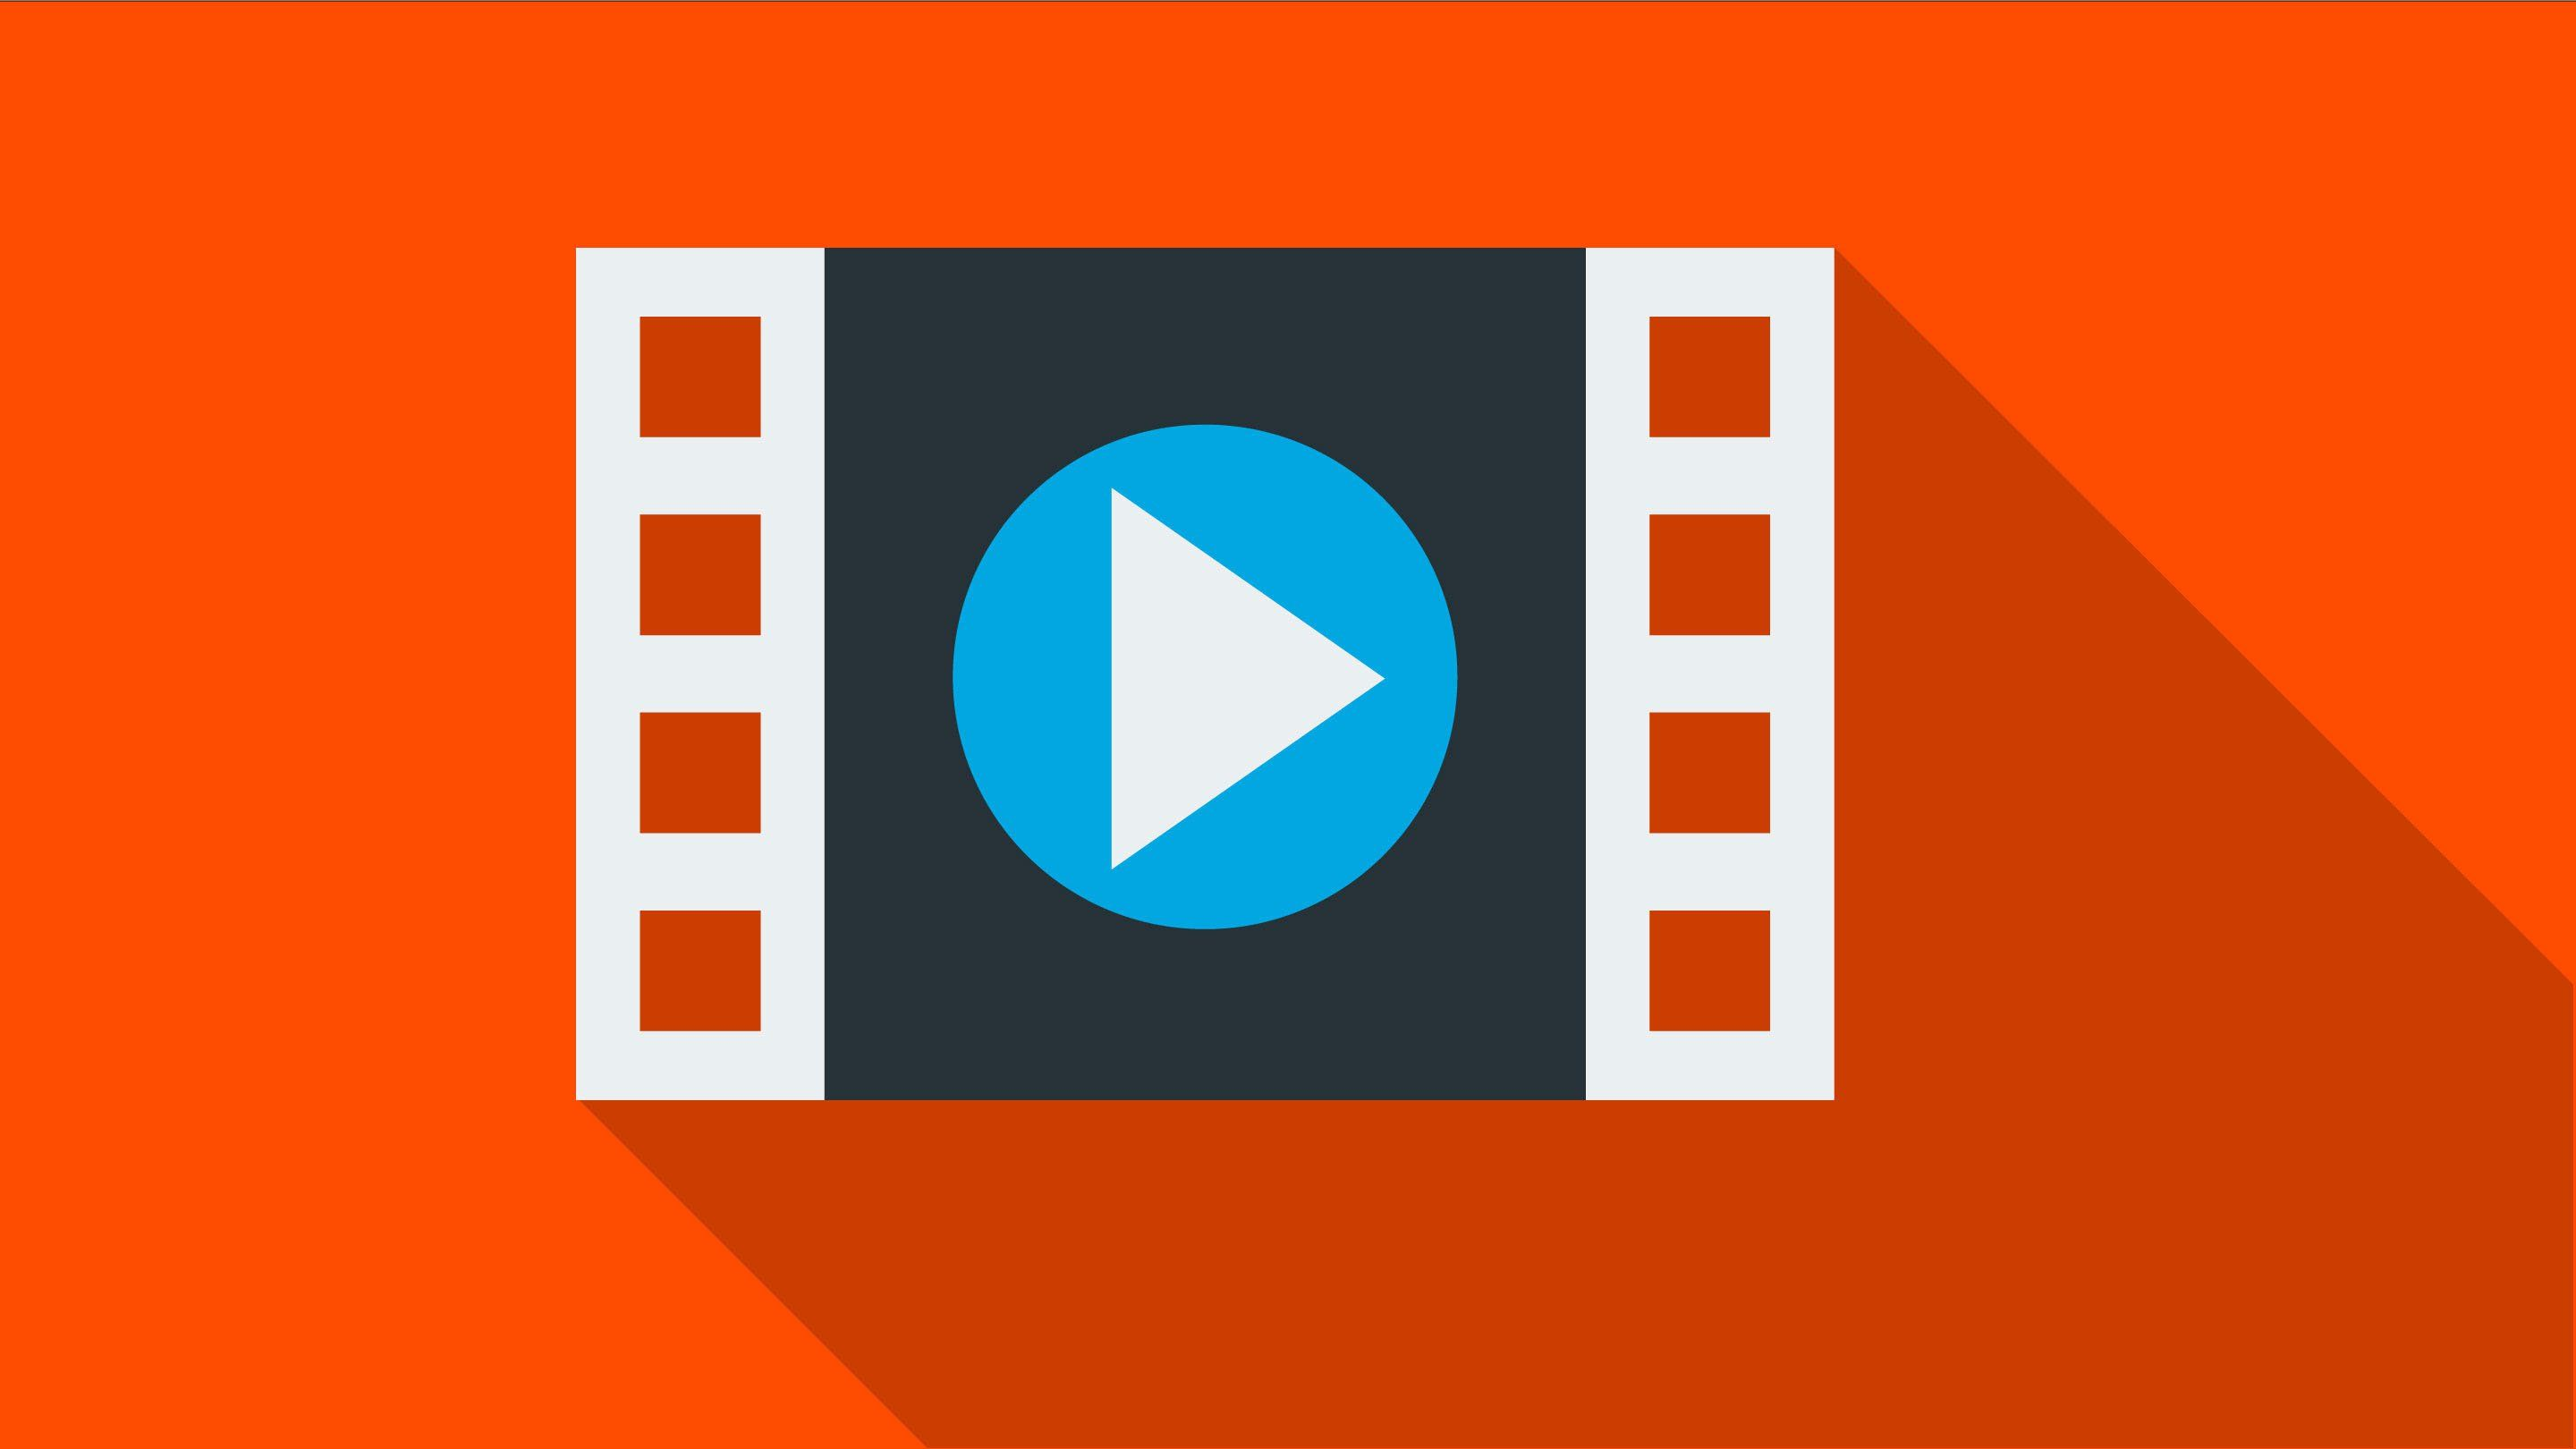 An illustration of a square 35 millimeter film against an orange backdrop with the video play button on top.